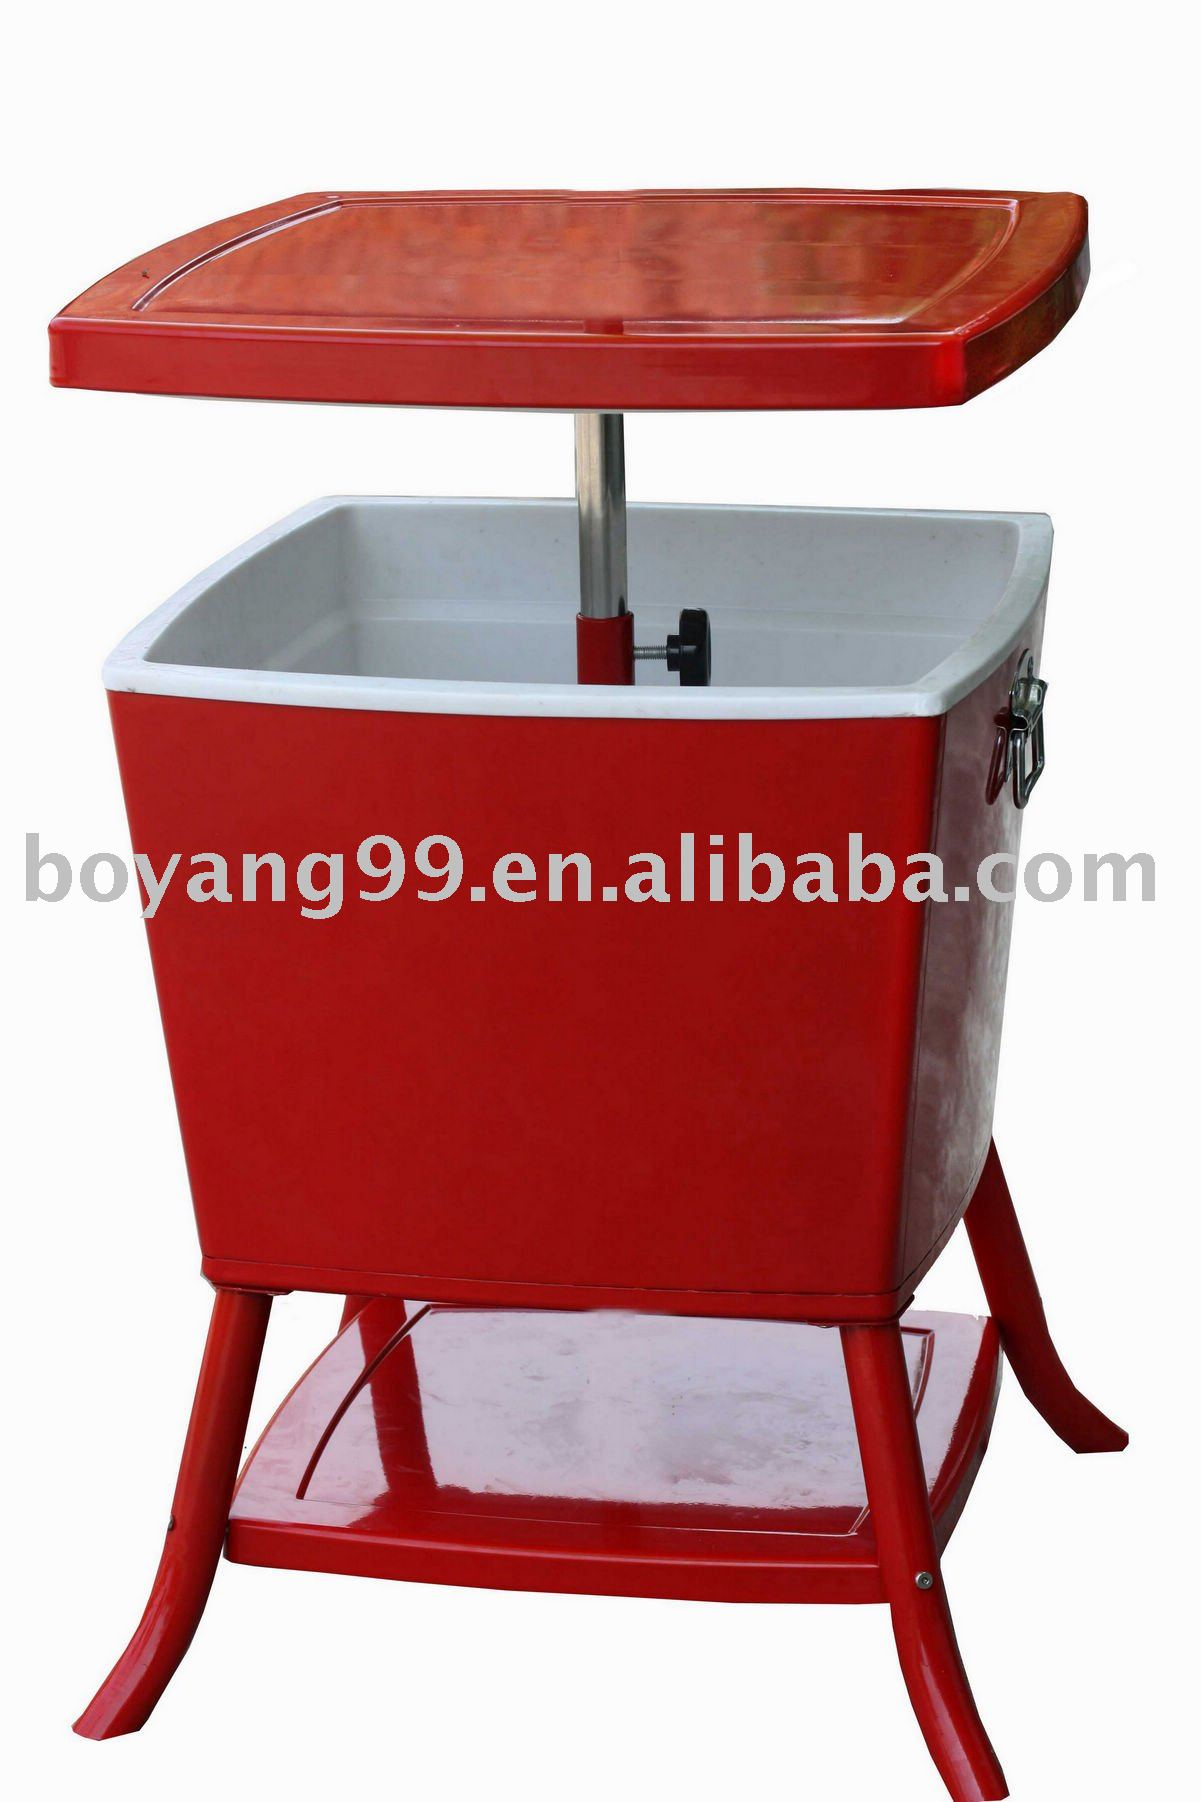 outdoor boat-shape ice bar cooler table